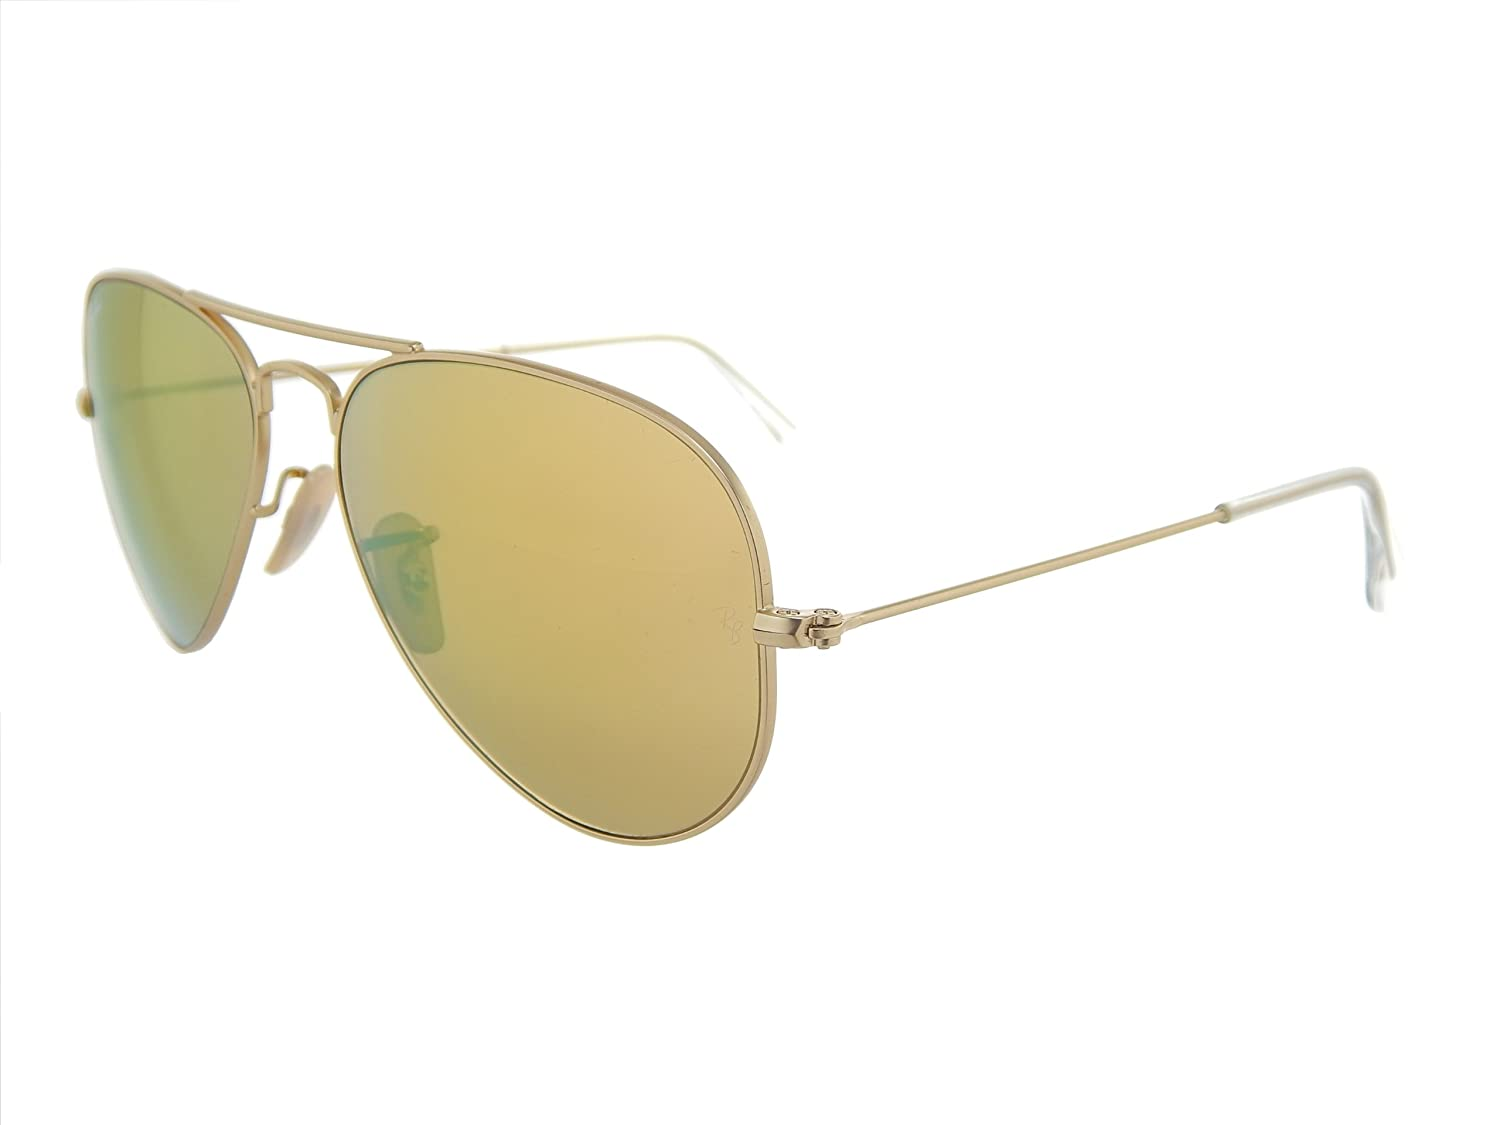 c266726e214 Amazon.com  New Ray Ban Aviator RB3025 112 93 Matte Gold Brown Mirror Gold  Lens 58mm Sunglasses  Shoes